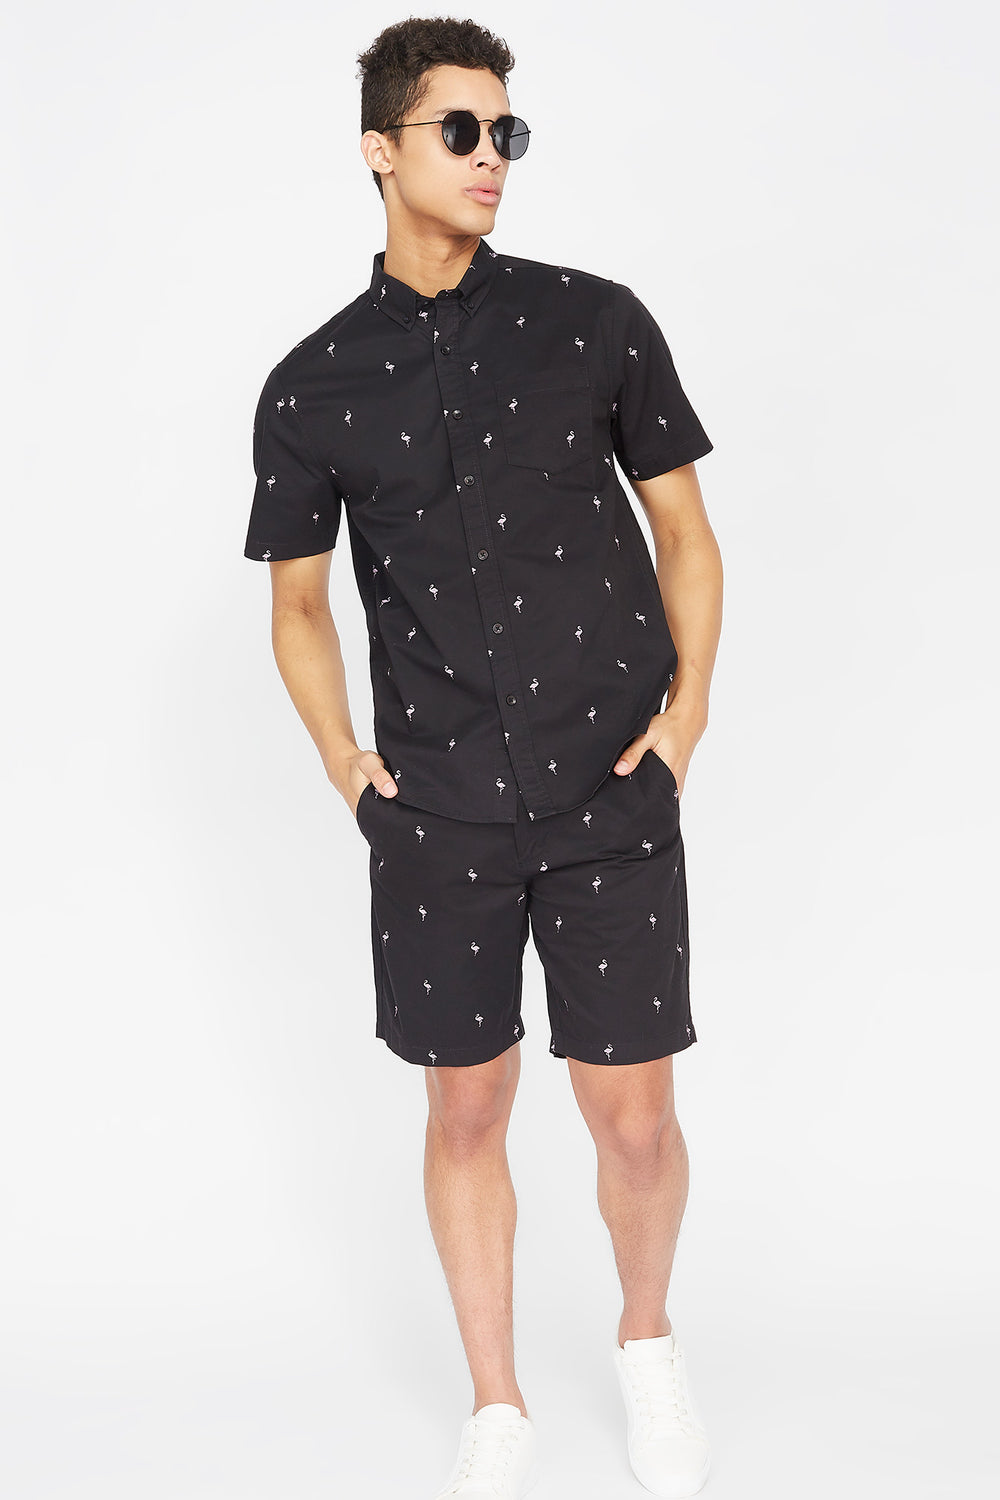 Printed Button-Up Short Sleeve Top Black